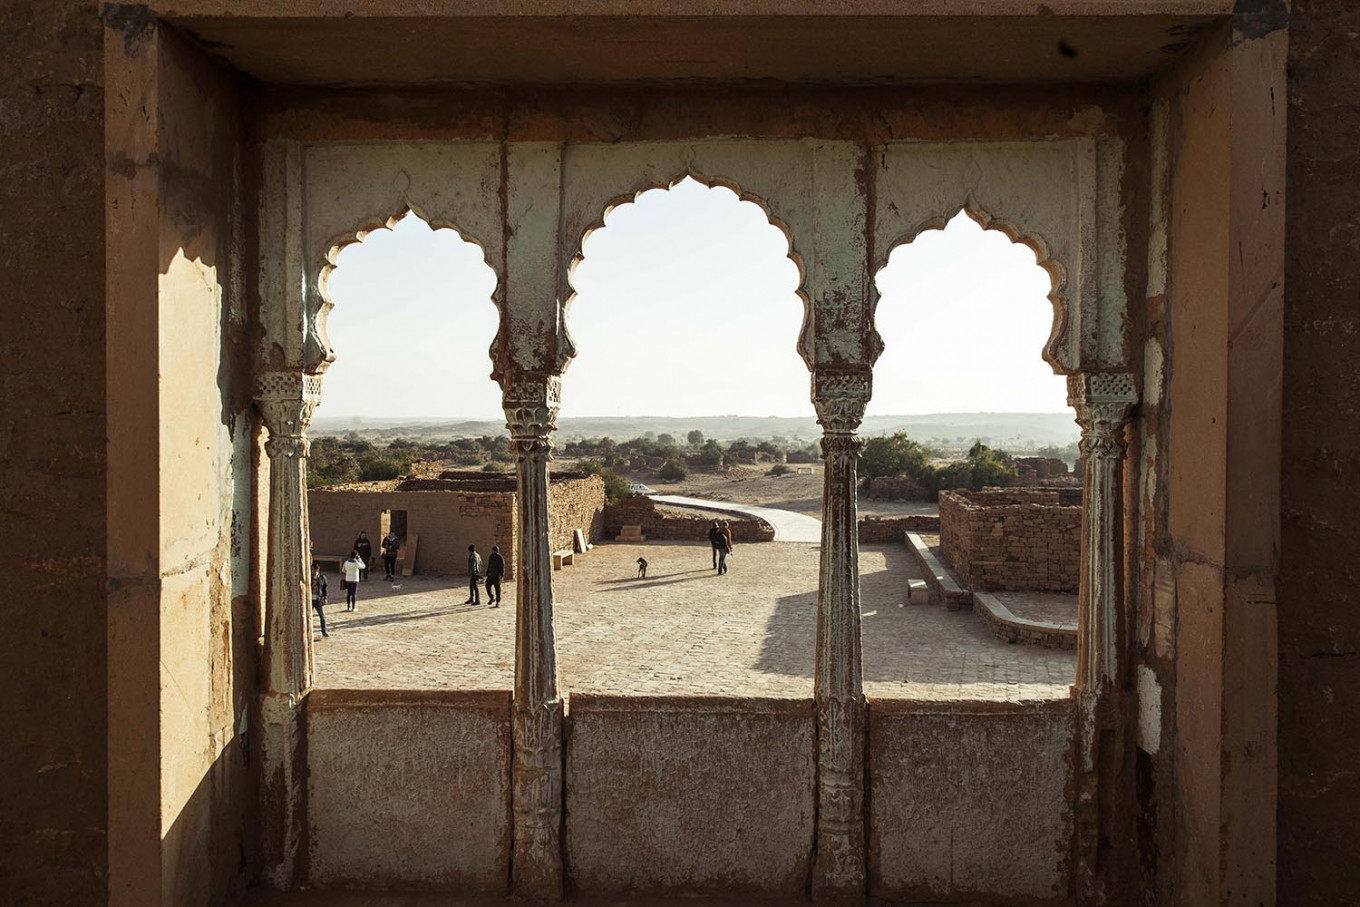 A group of tourists explores Kuldhara, an abandoned village built in the 13th century. JP/Irene Barlian